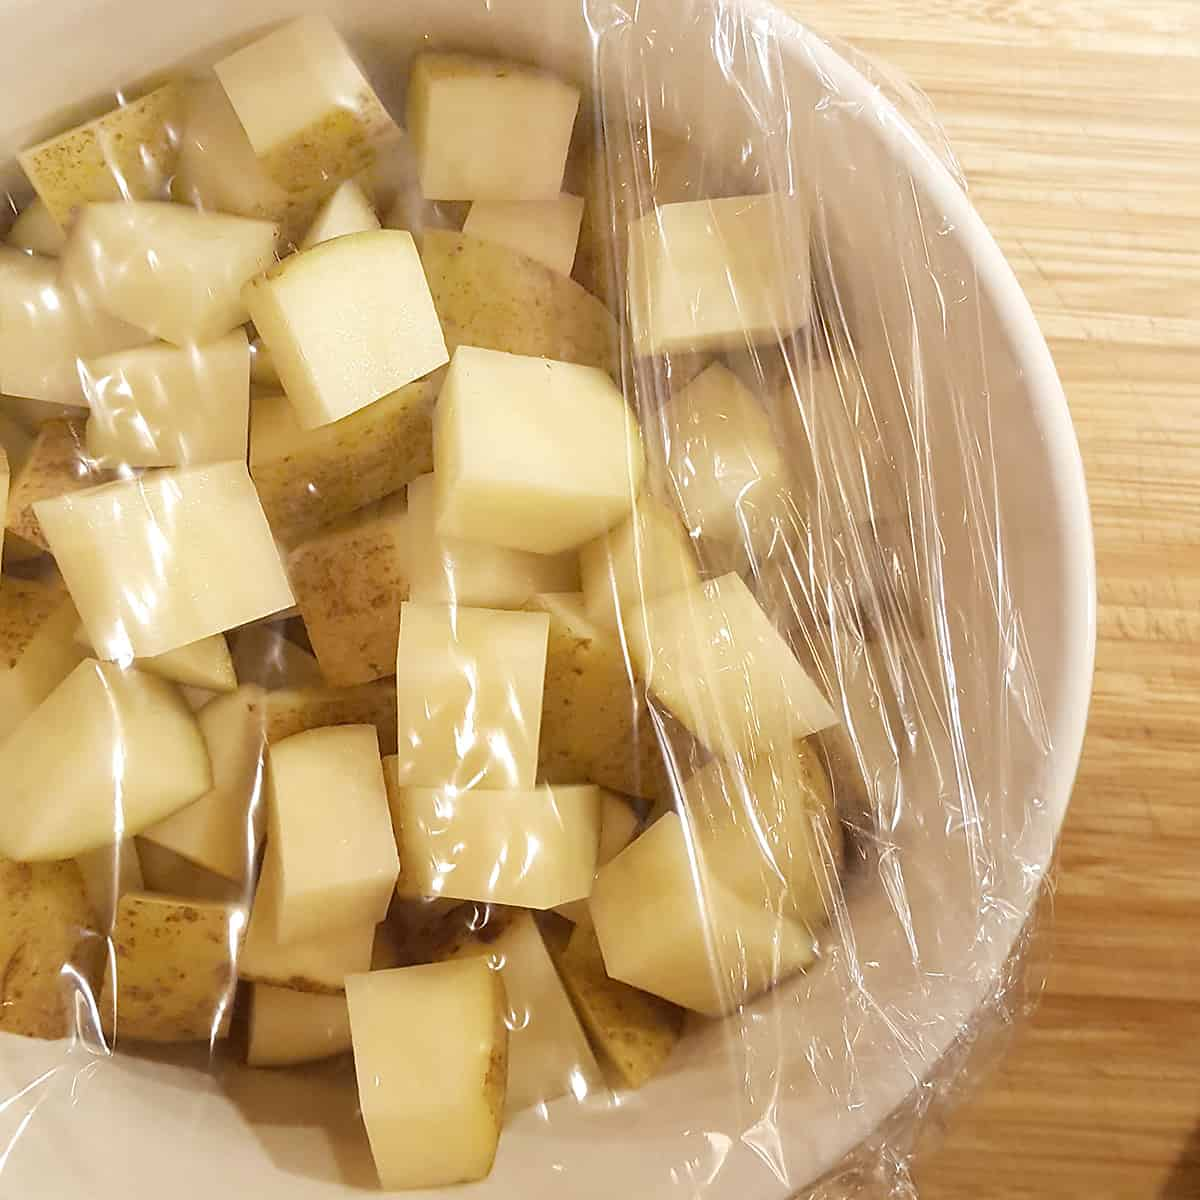 Cubed potatoes in a bowl covered with plastic wrap.